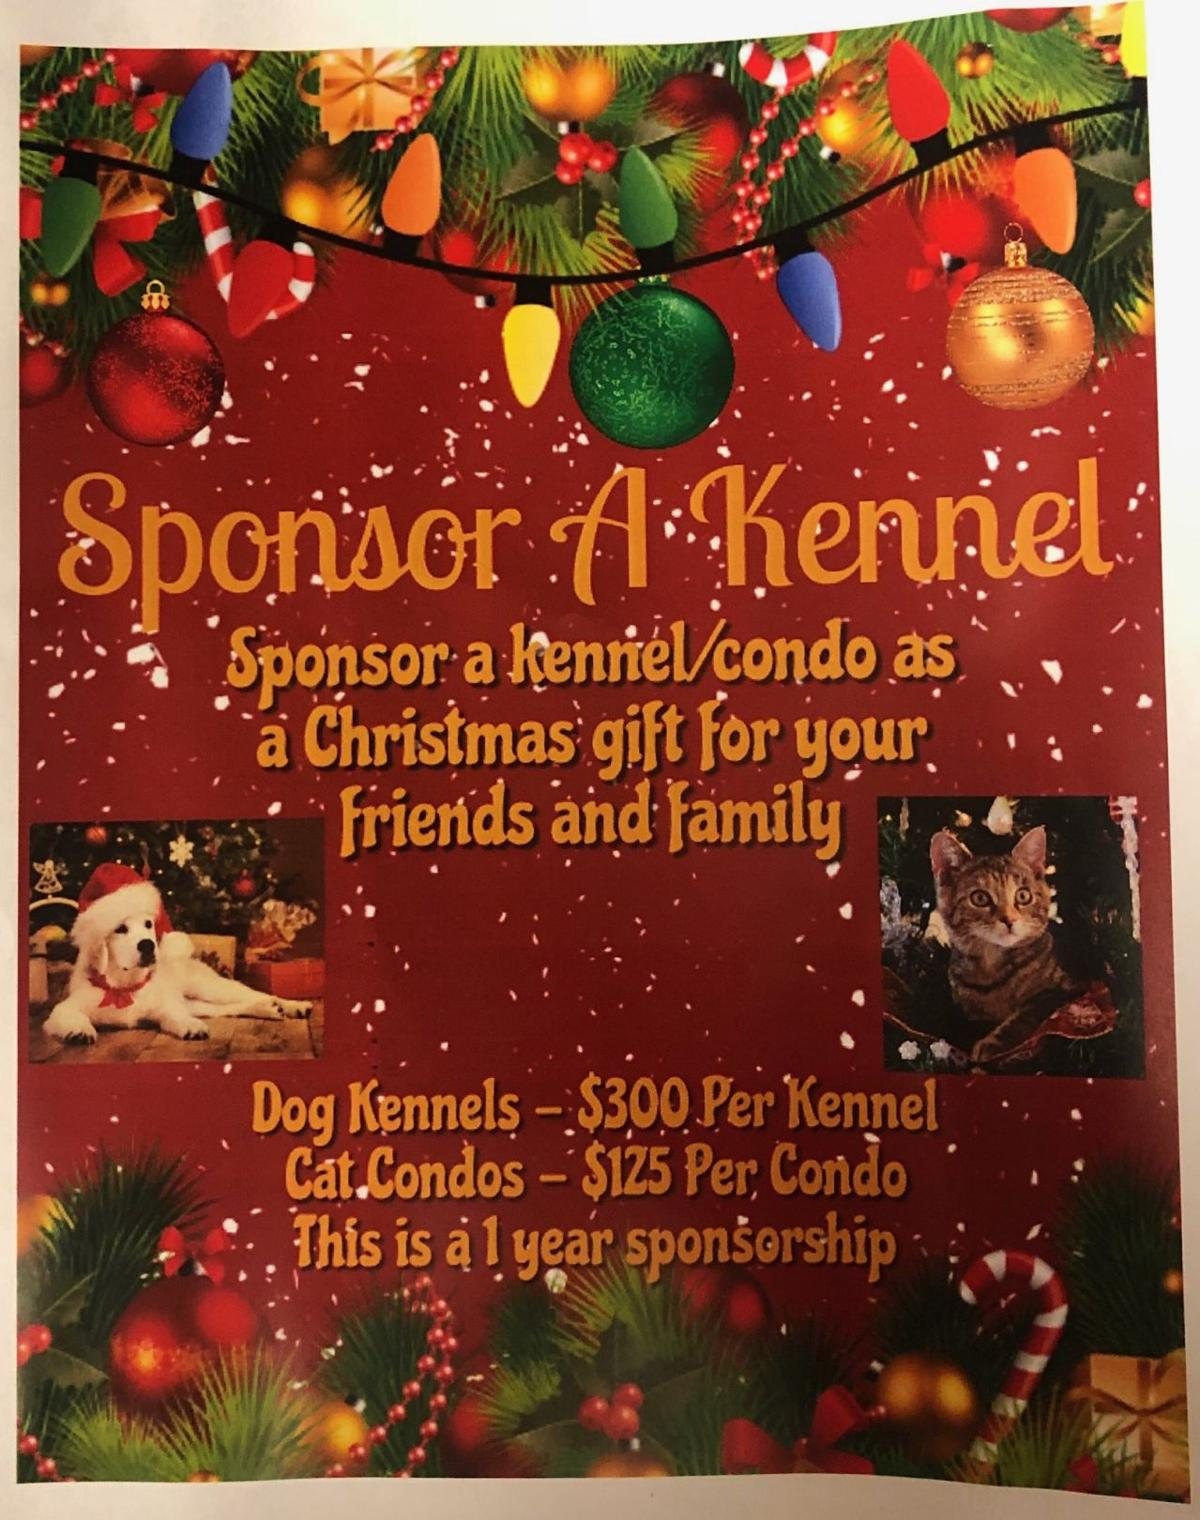 Animal shelter offers kennel, cat condo sponsorships